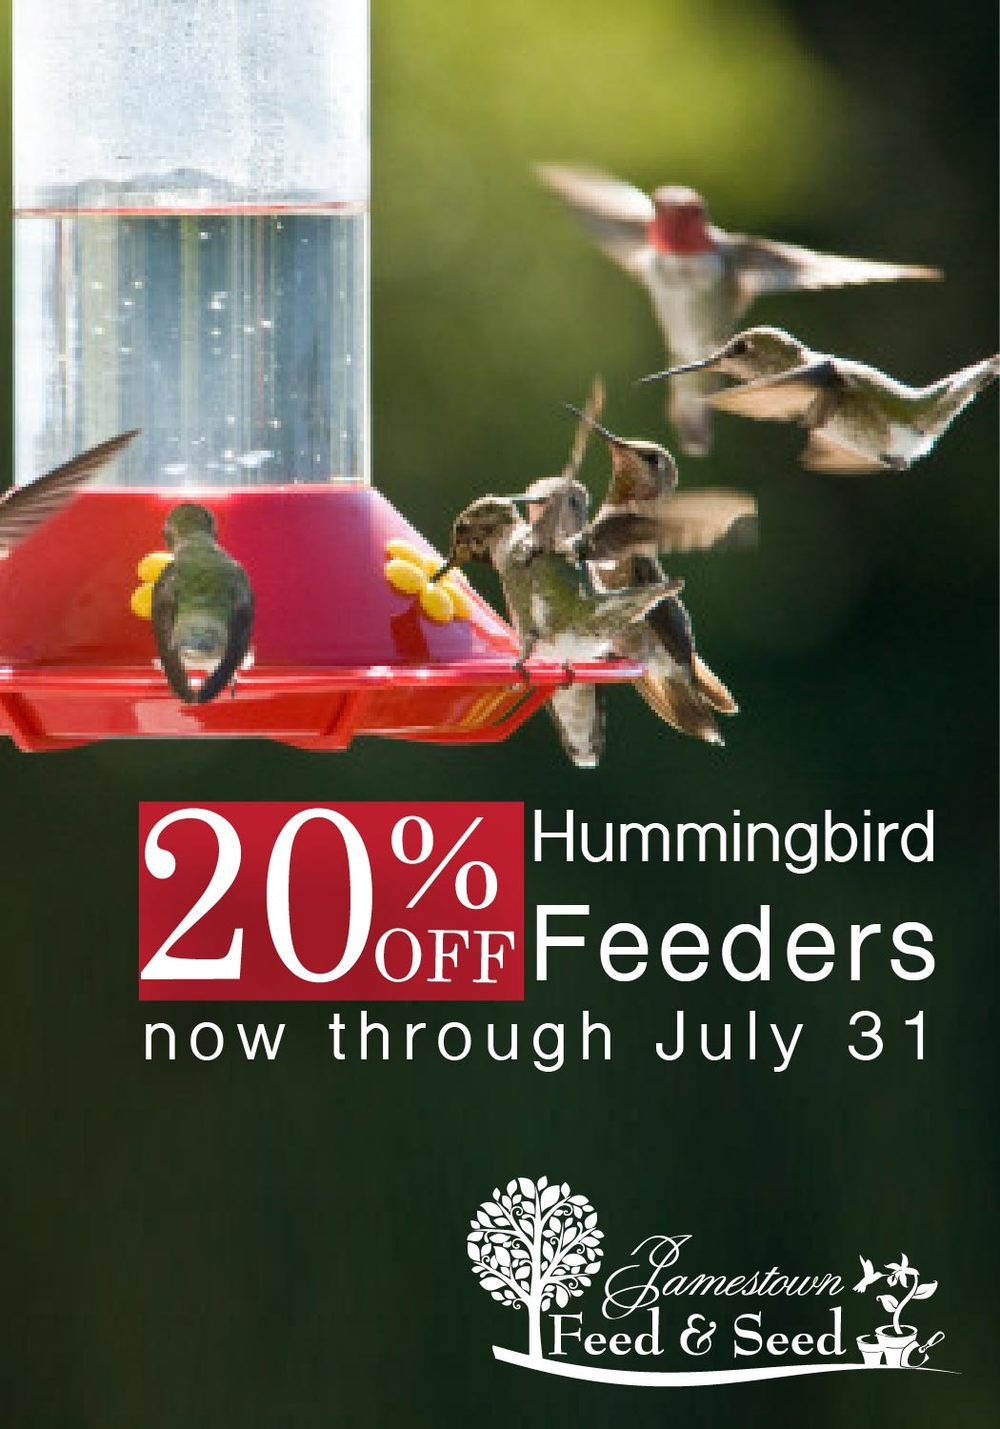 hummingbird feeders sale-01.jpg